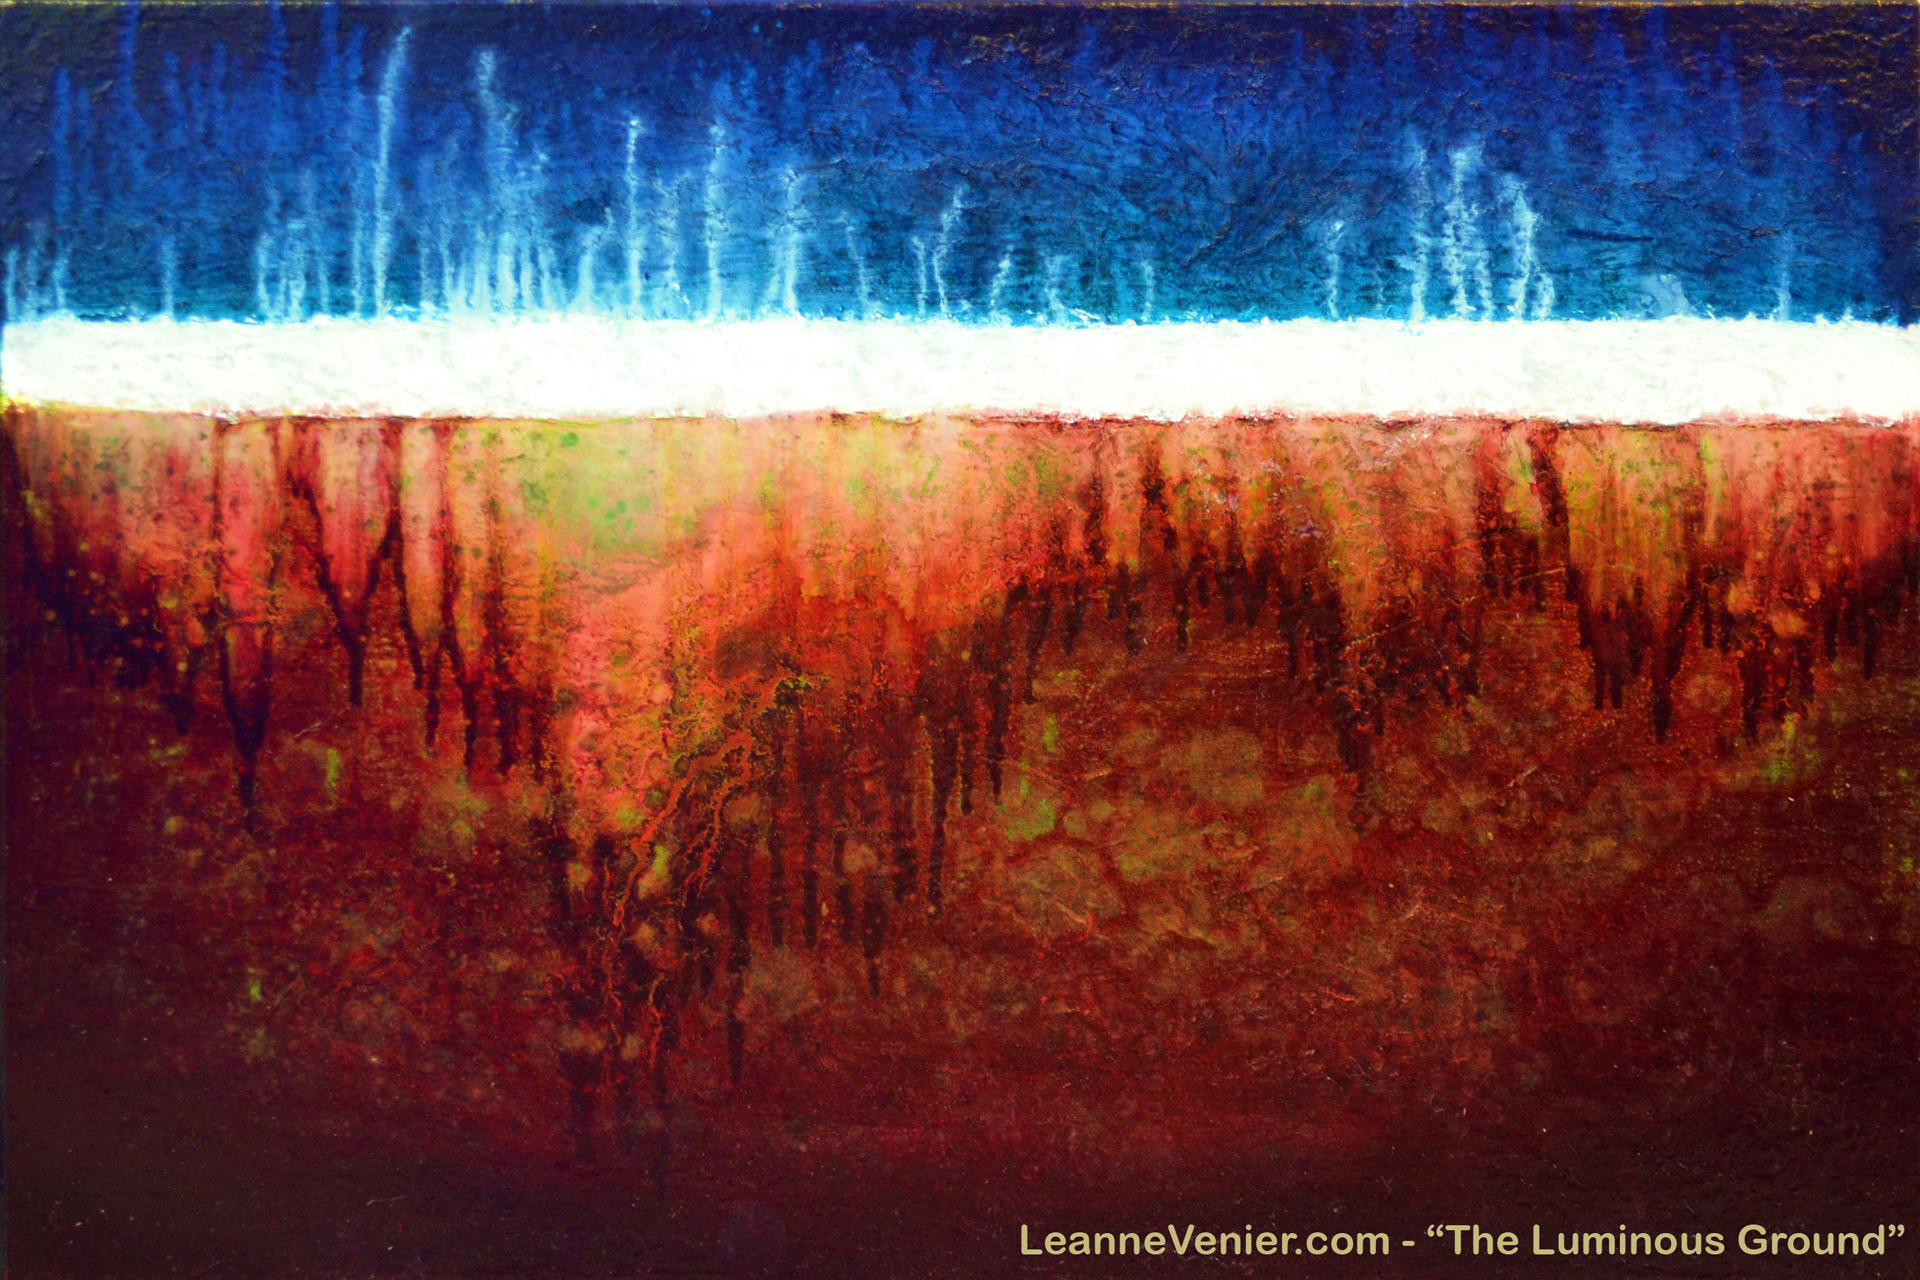 THE LUMINOUS GROUND by Leanne Venier_ScreenSaver